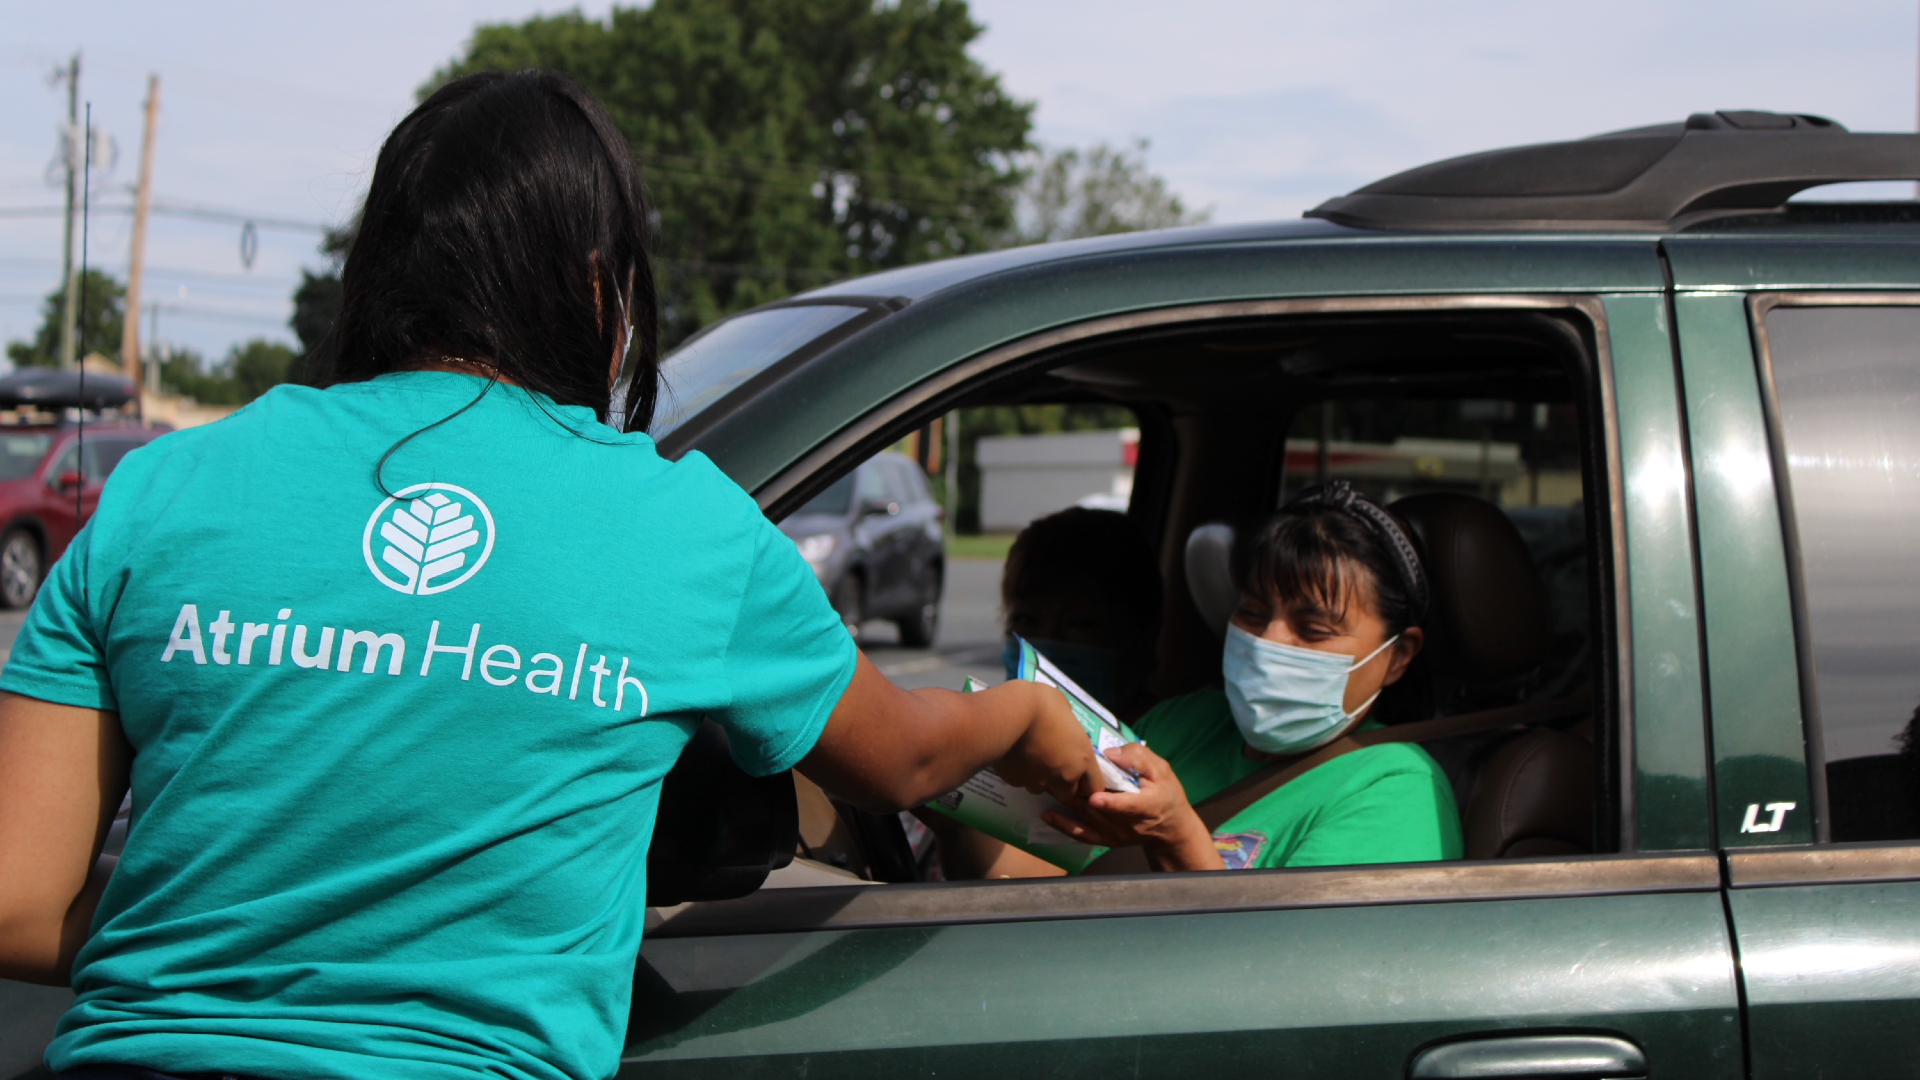 In a time of uncertainty, a unique public-private partnership came together to create an initiative that provided over 3 million free masks to members of our community in a time of need